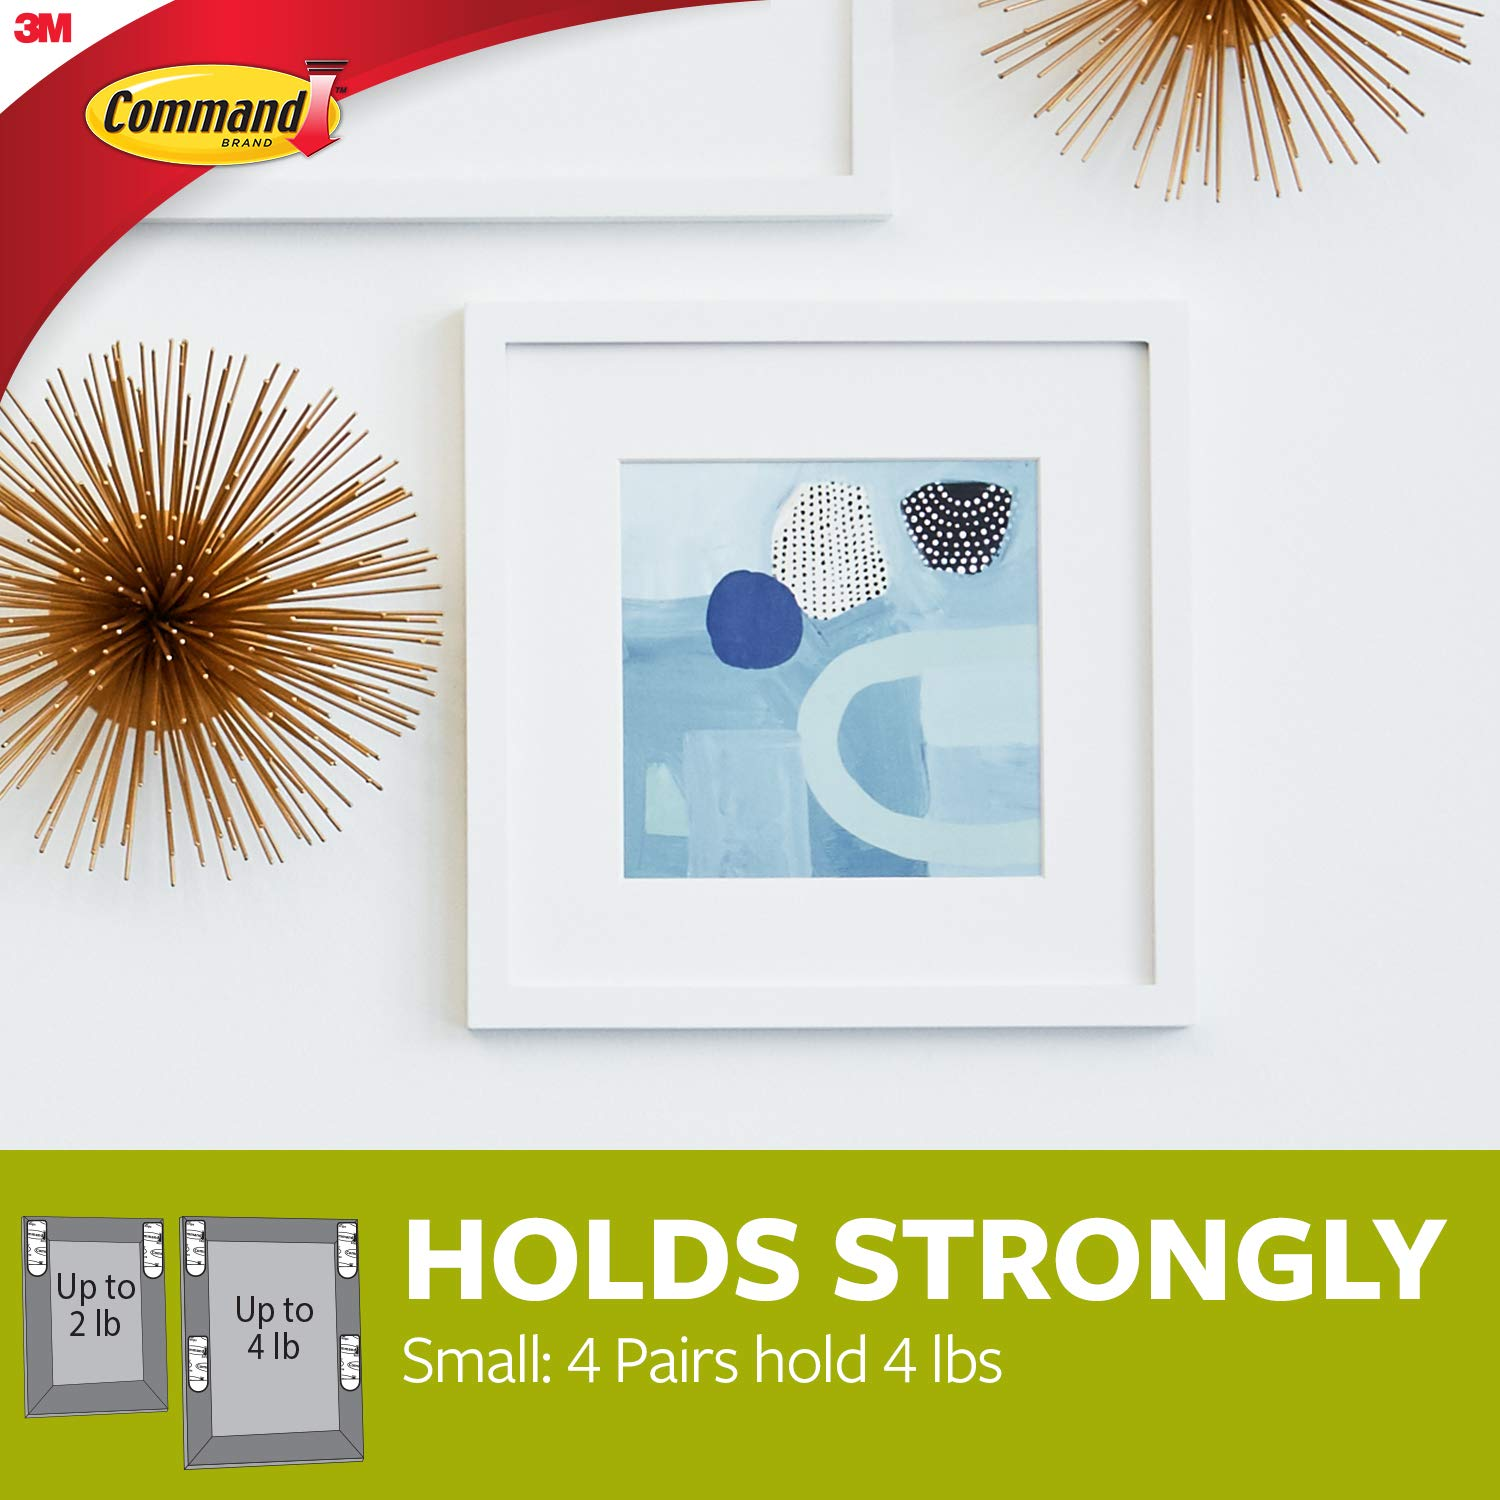 Command UU001563392 Adhesive Strips to Hang Narrow-Framed Pictures